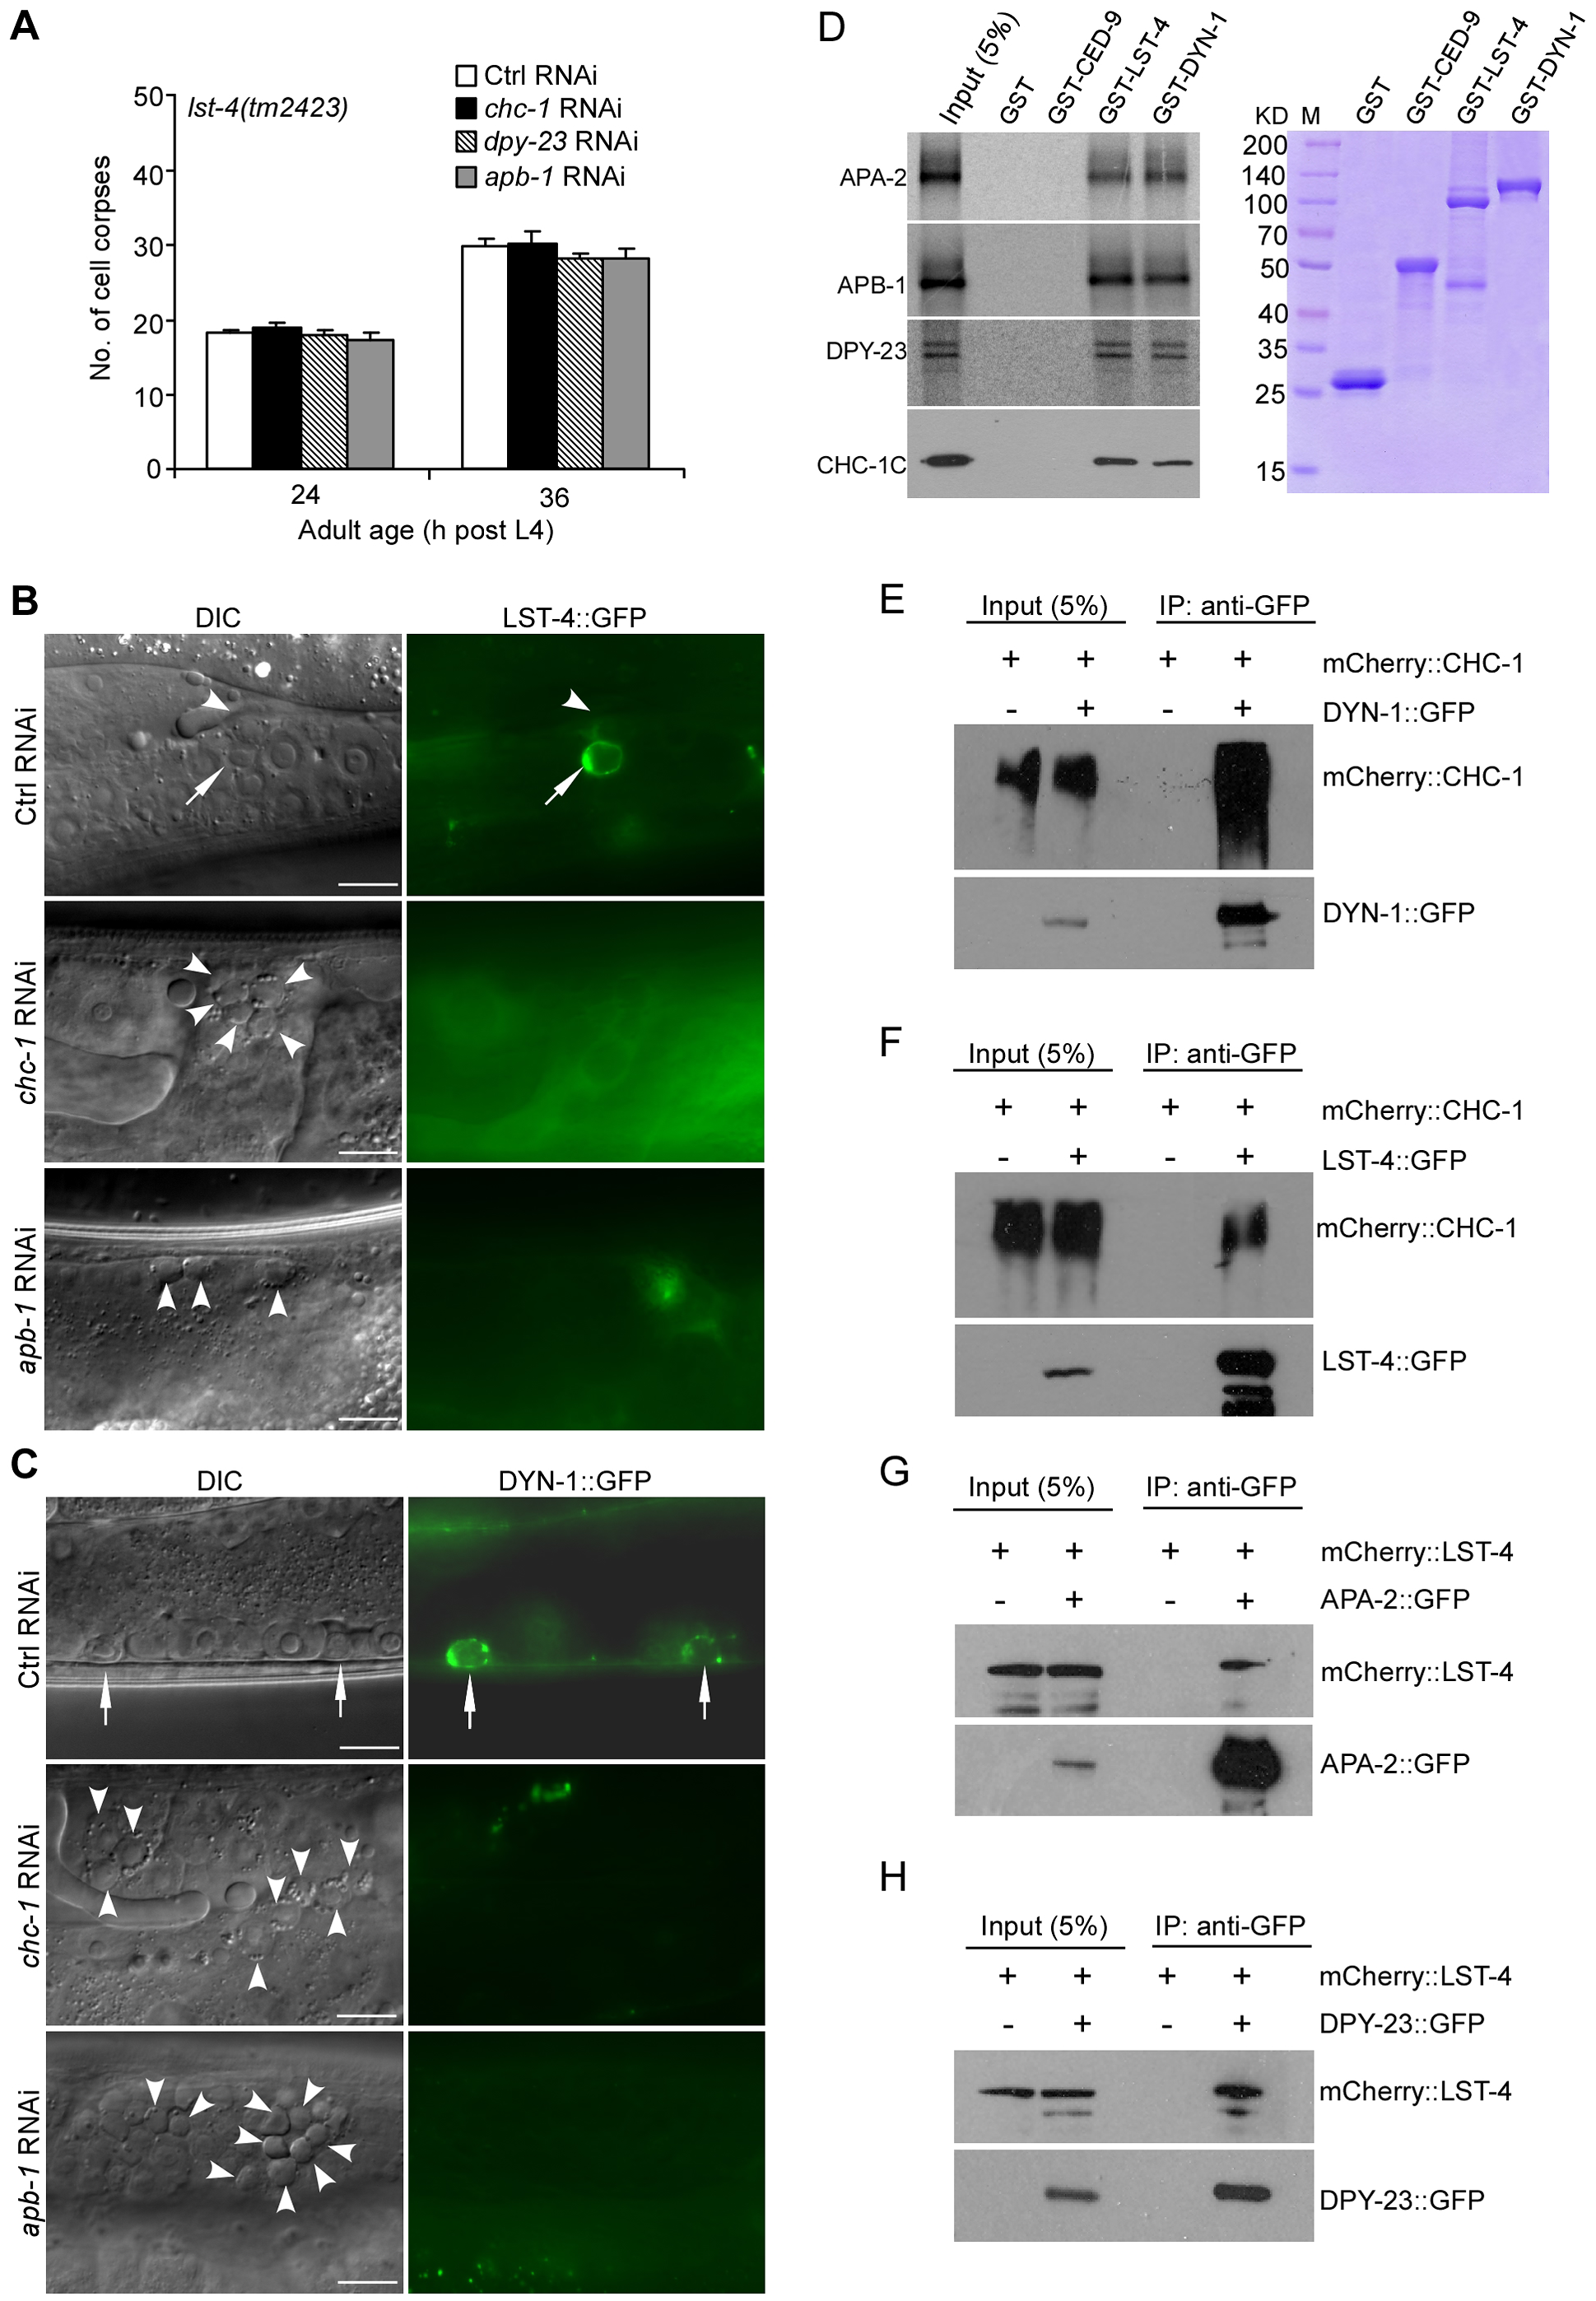 Clathrin and AP-2 function upstream of LST-4 and DYN-1 for apoptotic cell clearance.